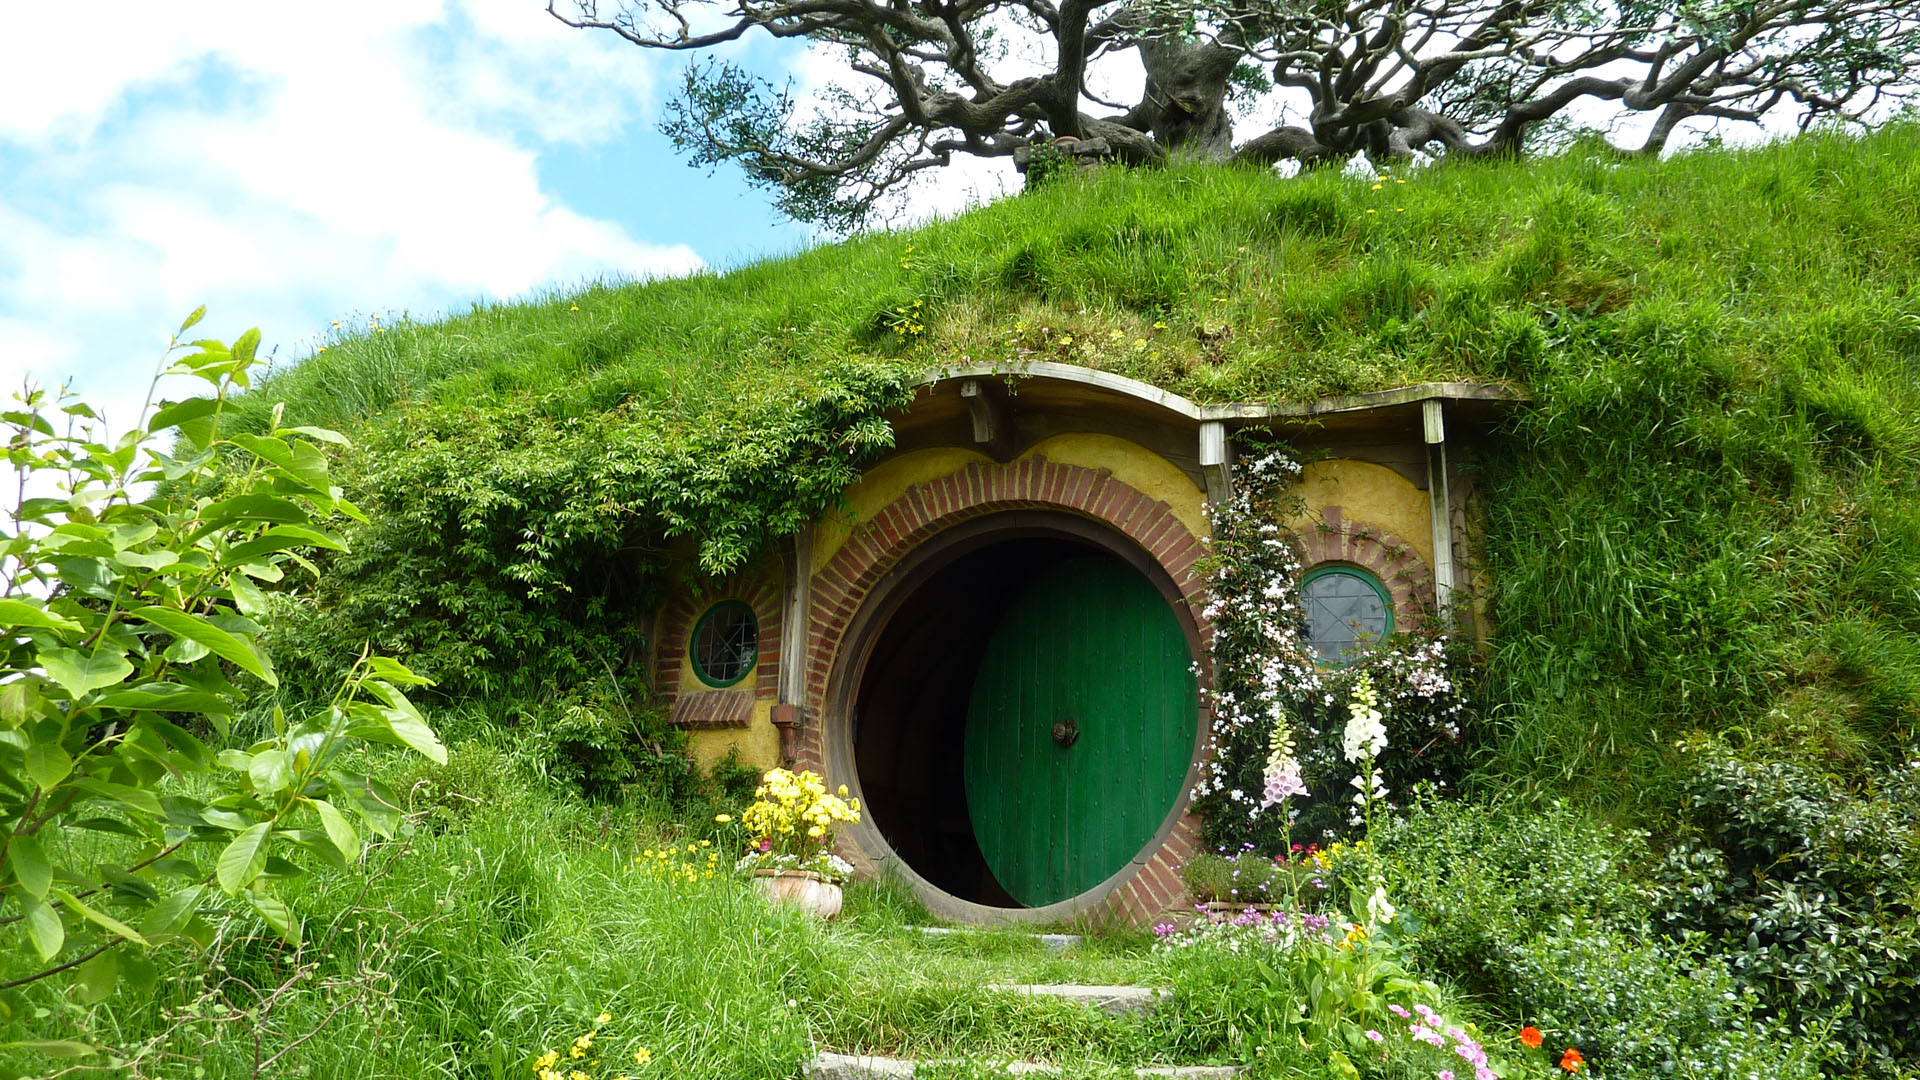 20 Things You Didn't Know About New Zealand Hobbit house